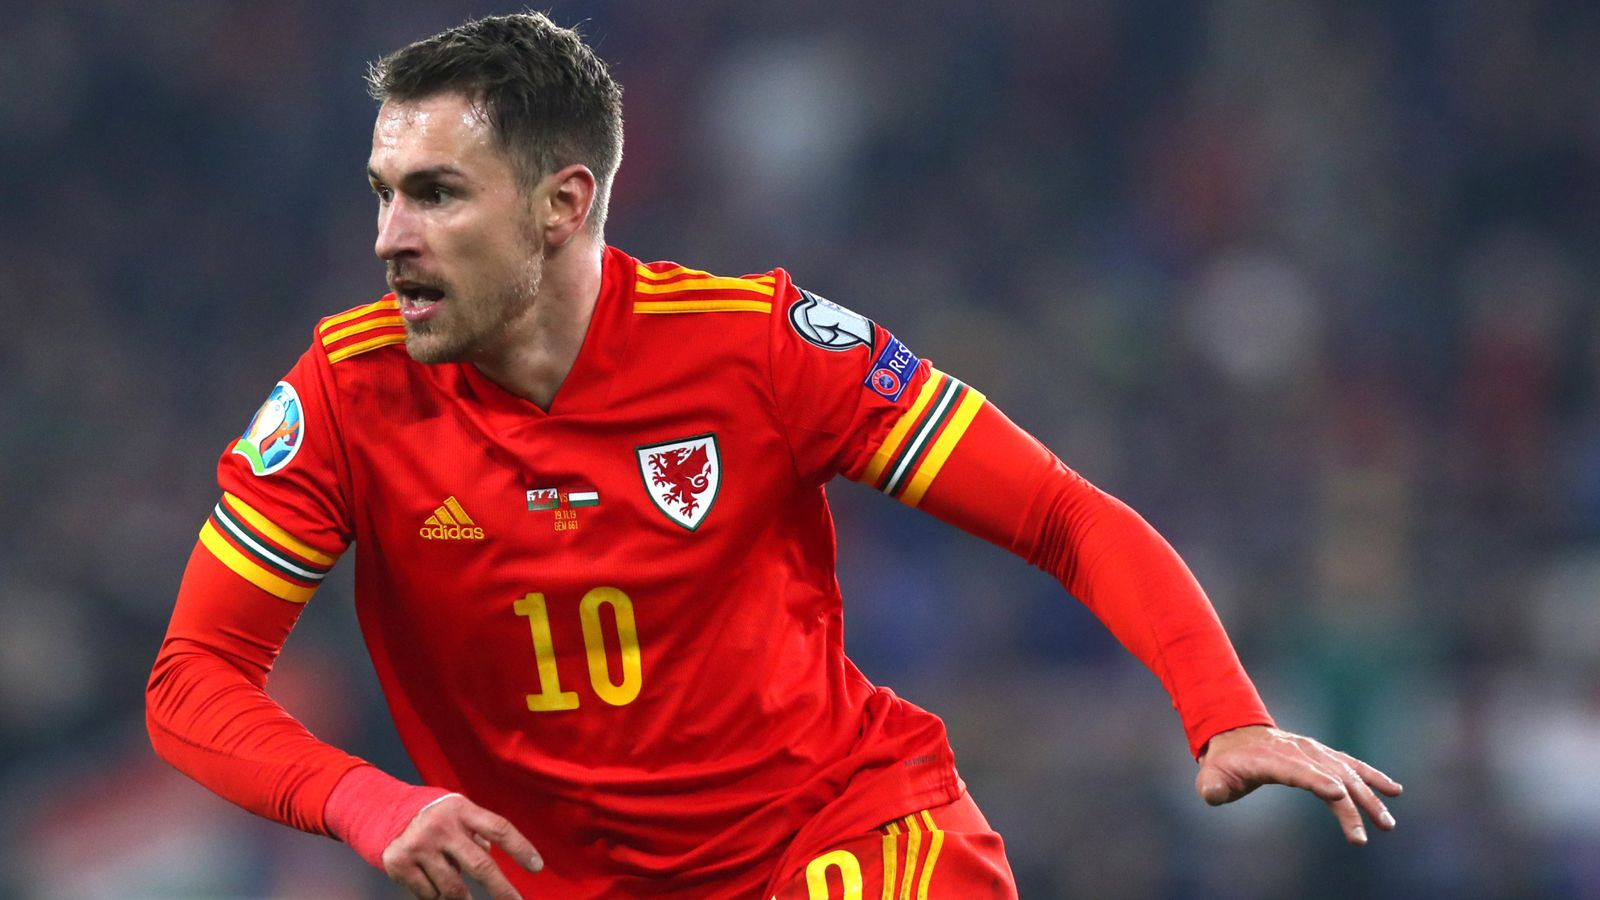 Aaron Ramsey withdraws from Wales squad as Gareth Bale returns | Football  News | Sky Sports